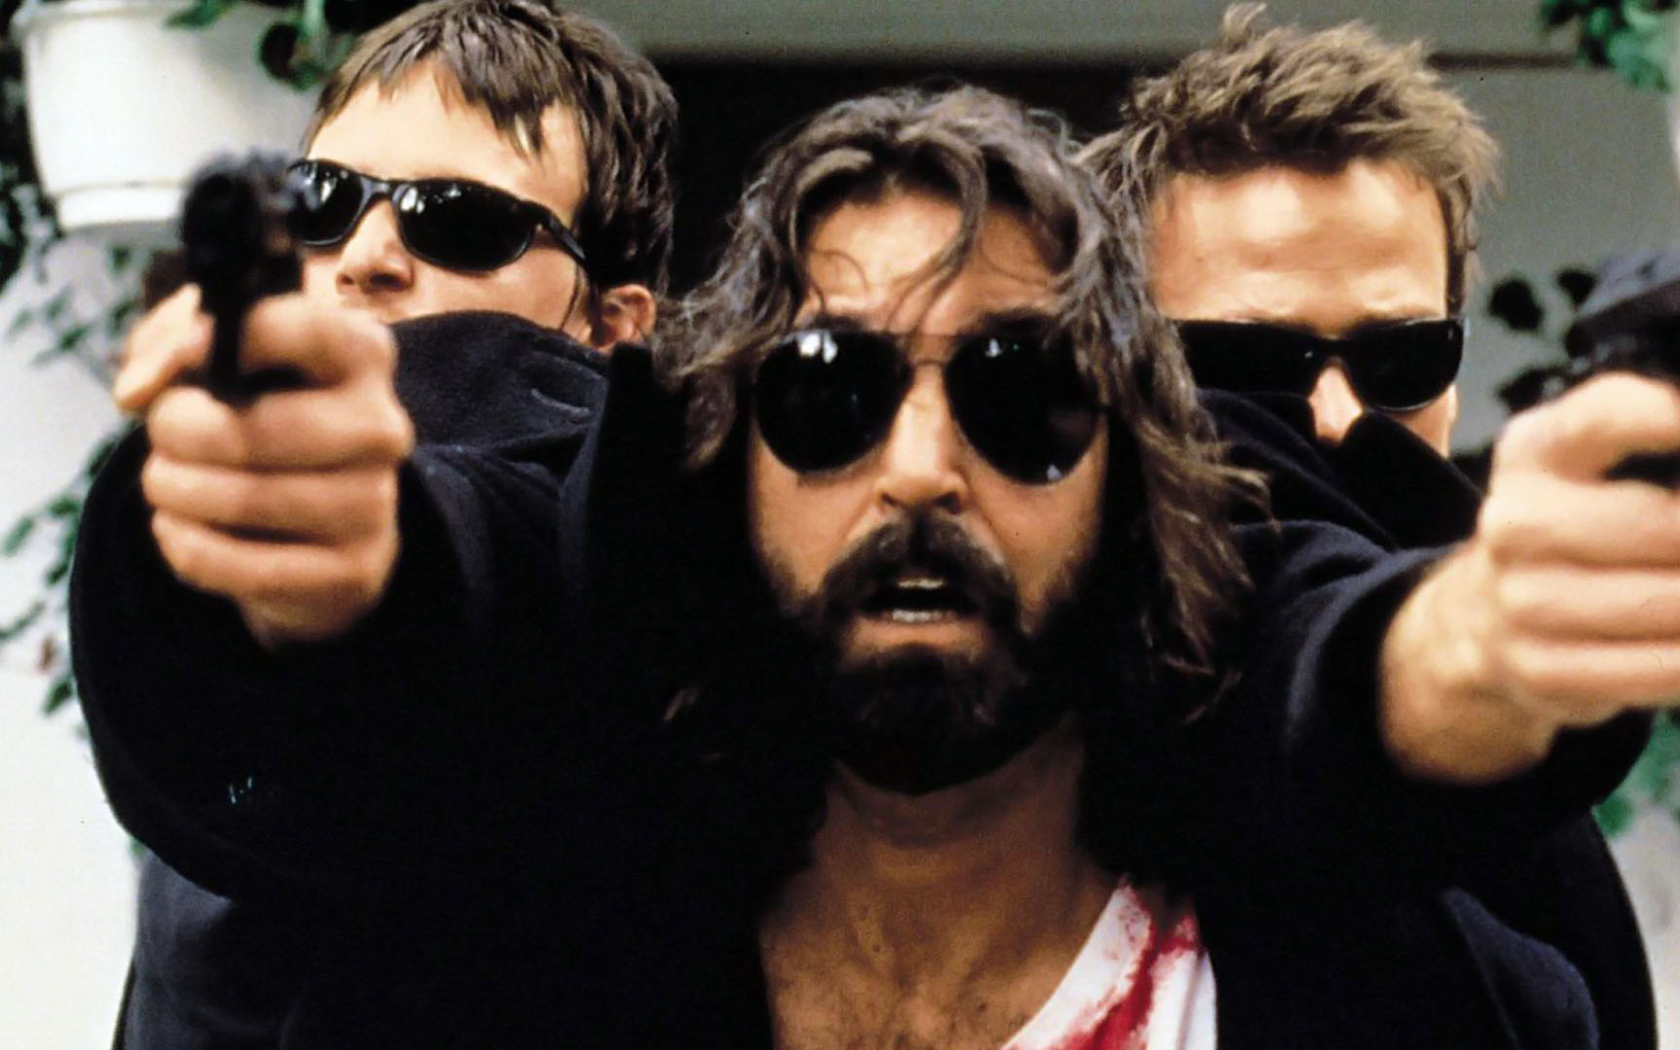 Boondock Saints Wallpaper HD Widescreen Wallpapers 1920x1080 Download Resolutions Desktop